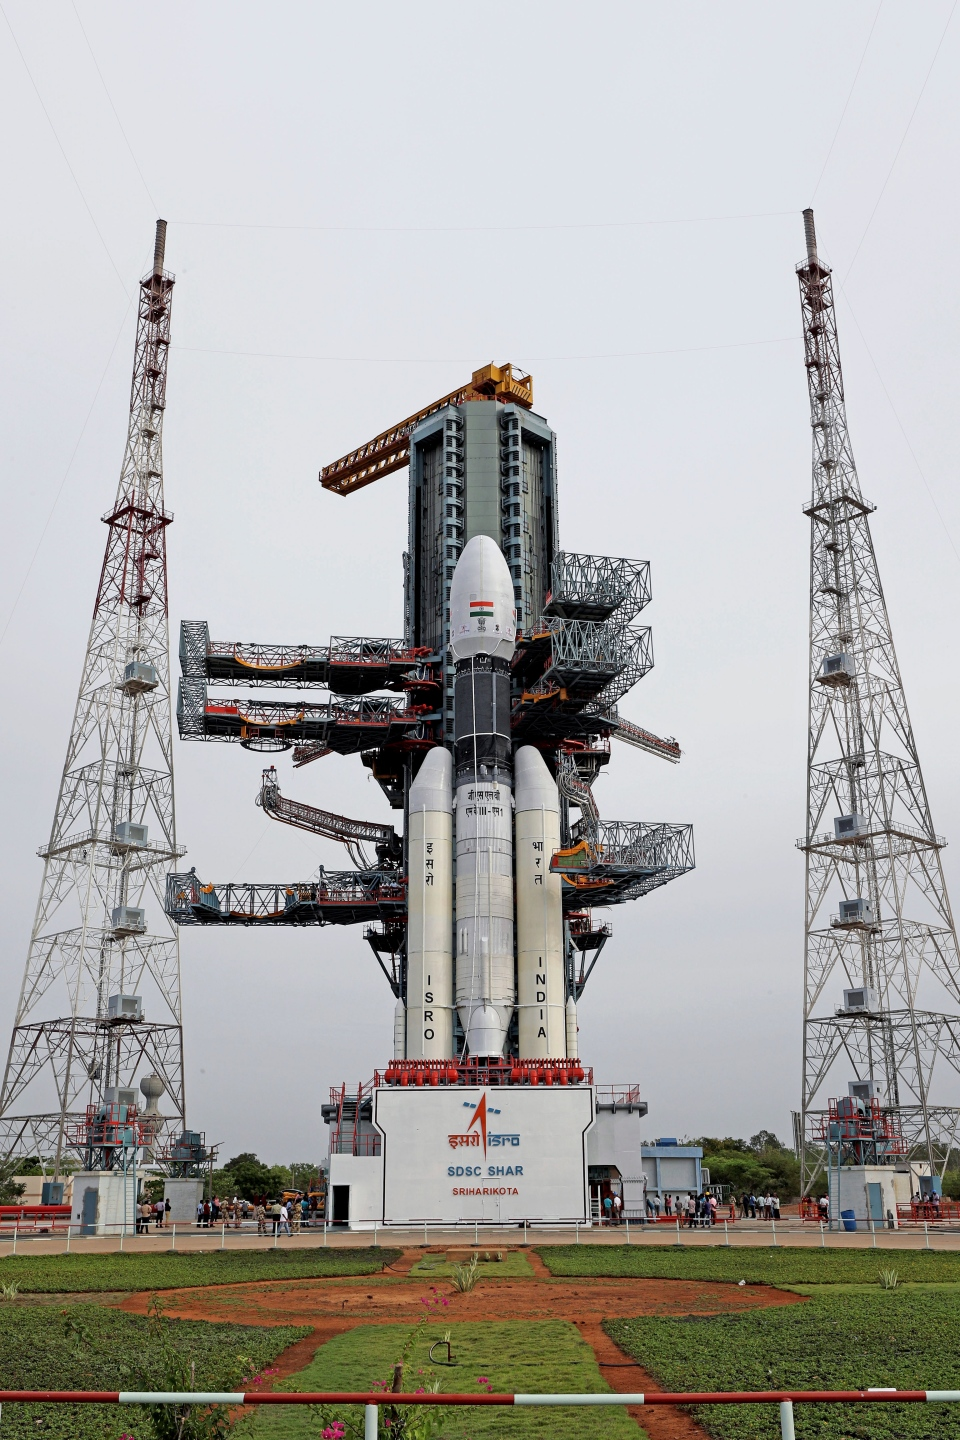 This July 2019, photo released by the Indian Space Research Organization (ISRO) shows its Geosynchronous Satellite Launch Vehicle (GSLV) MkIII-M1 being prepared for its July 15 launch in Sriharikota, an island off India's south-eastern coast. (Indian Space Research Organization via AP)